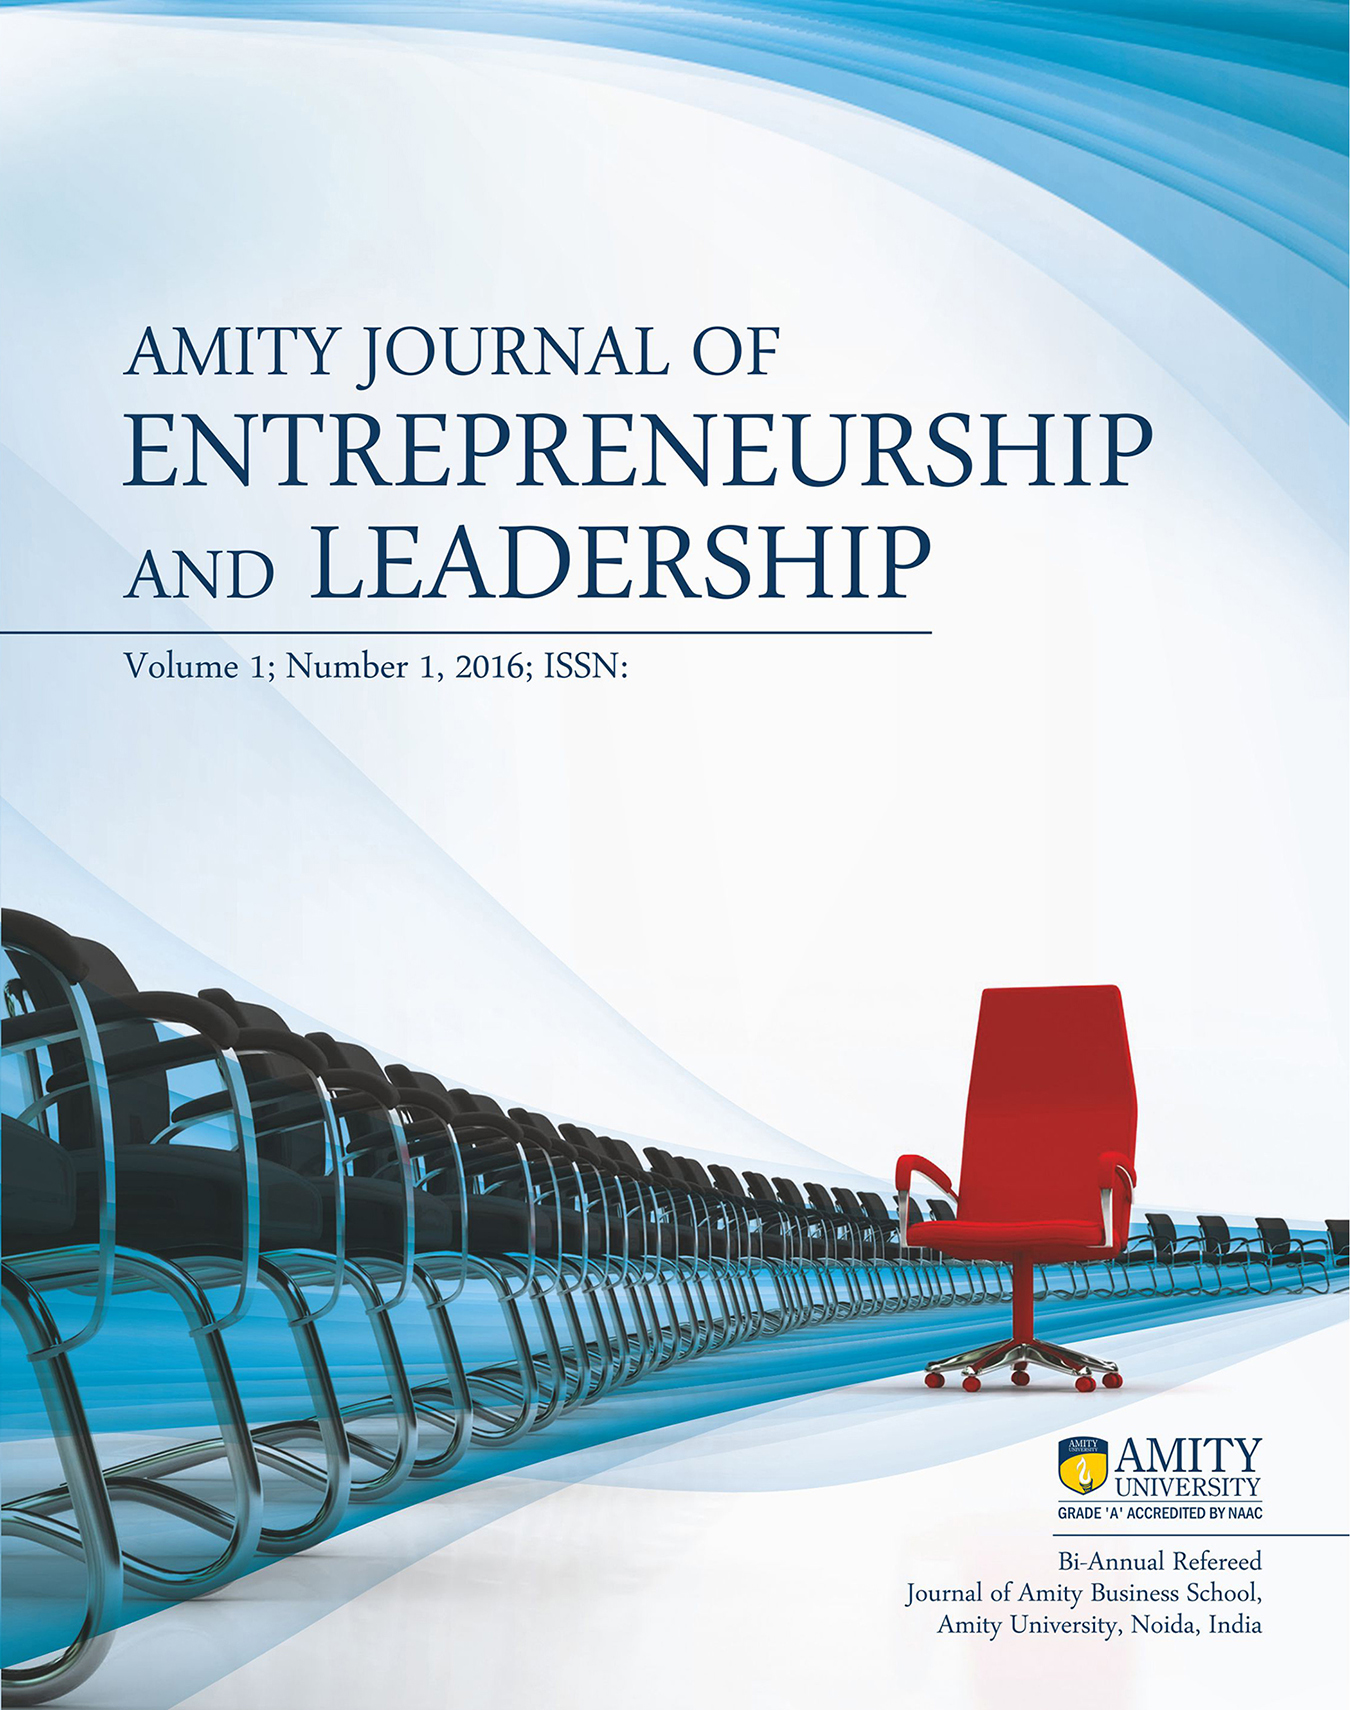 essays on intrapreneurship The intrapreneurship in kosovo get even a better essay we will write a custom essay sample on intrapreneurship in kosovo topics specifically for you order now abstraction in this paper we will speak about the intrapreneurship consequence in the concern growing in kosovo.